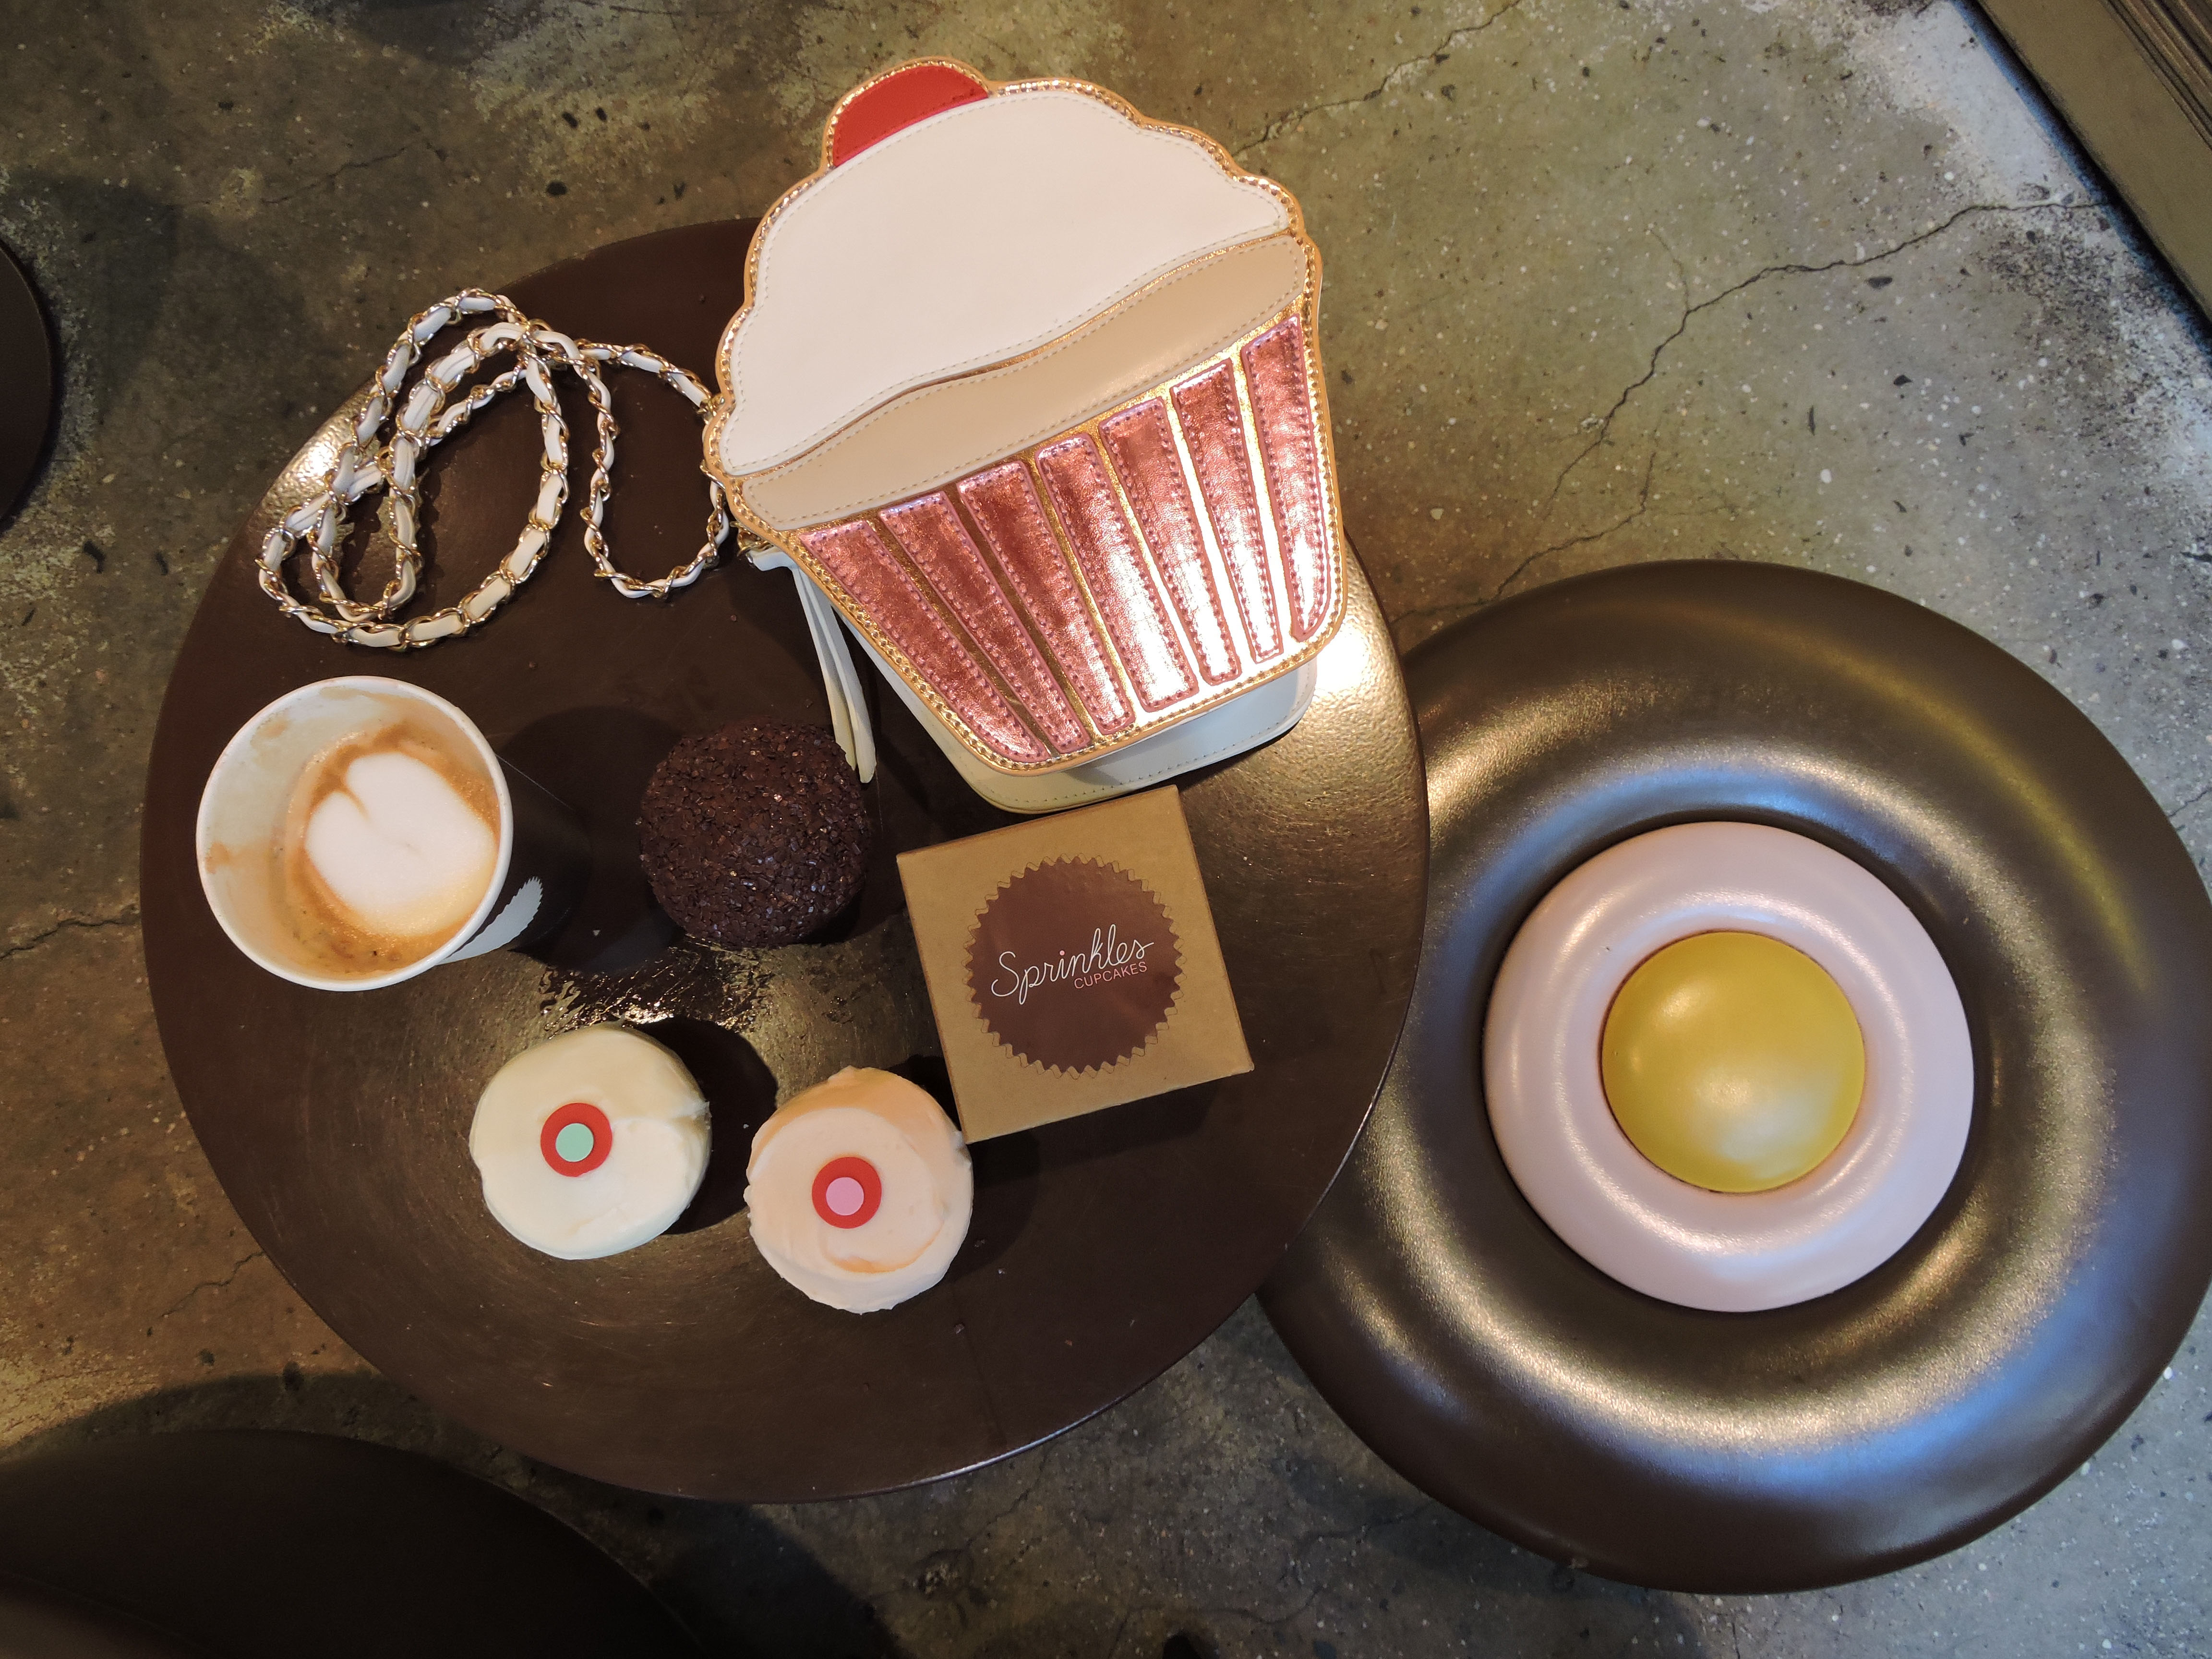 2.cup cake display with purse 72